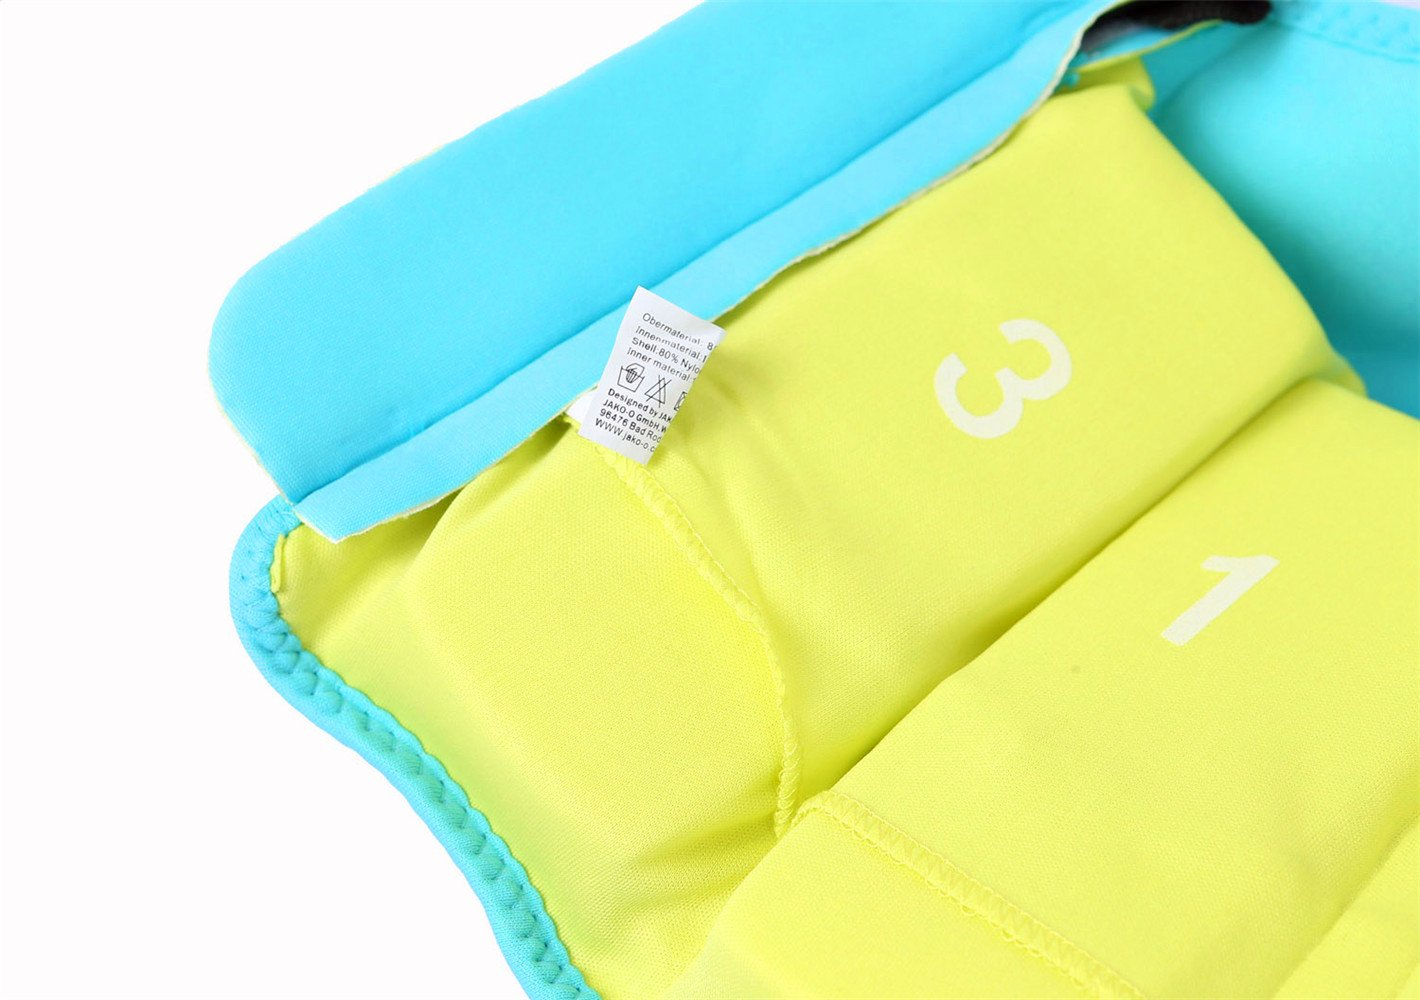 Titop Infant Baby Life Jacket Under 20 Lbs Children Life Vest Yellow Small /&Swimming Panels /& Swimming Cap /& Swimming Glasses /& Floatation Sleeves /& Nose Protector /& Ear Protector 7-set Package